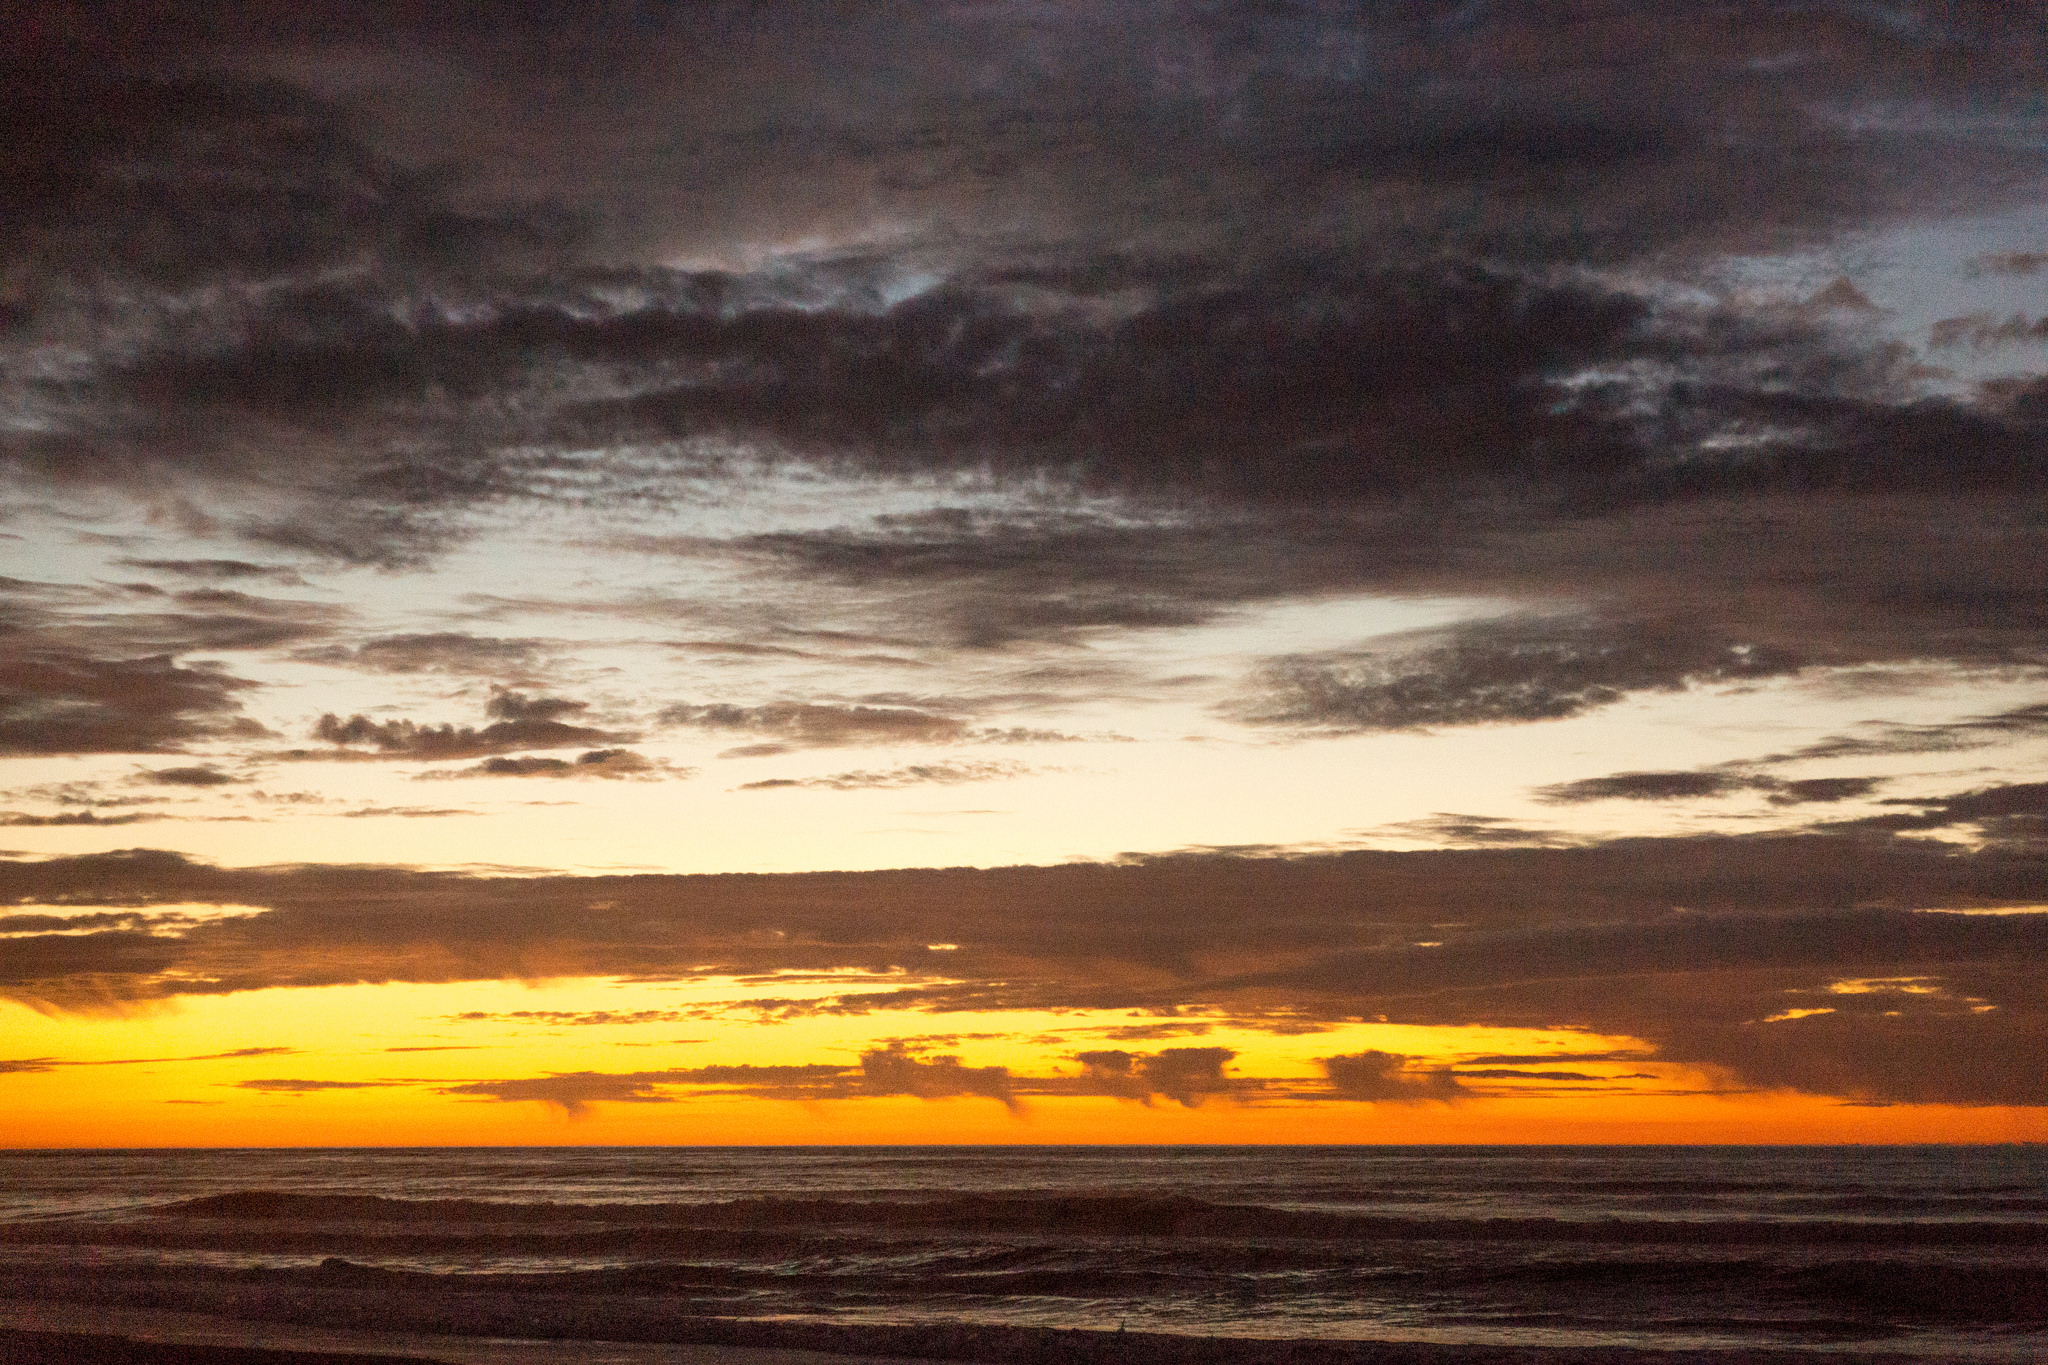 This is the sunset over the west Coast of New Zealand.